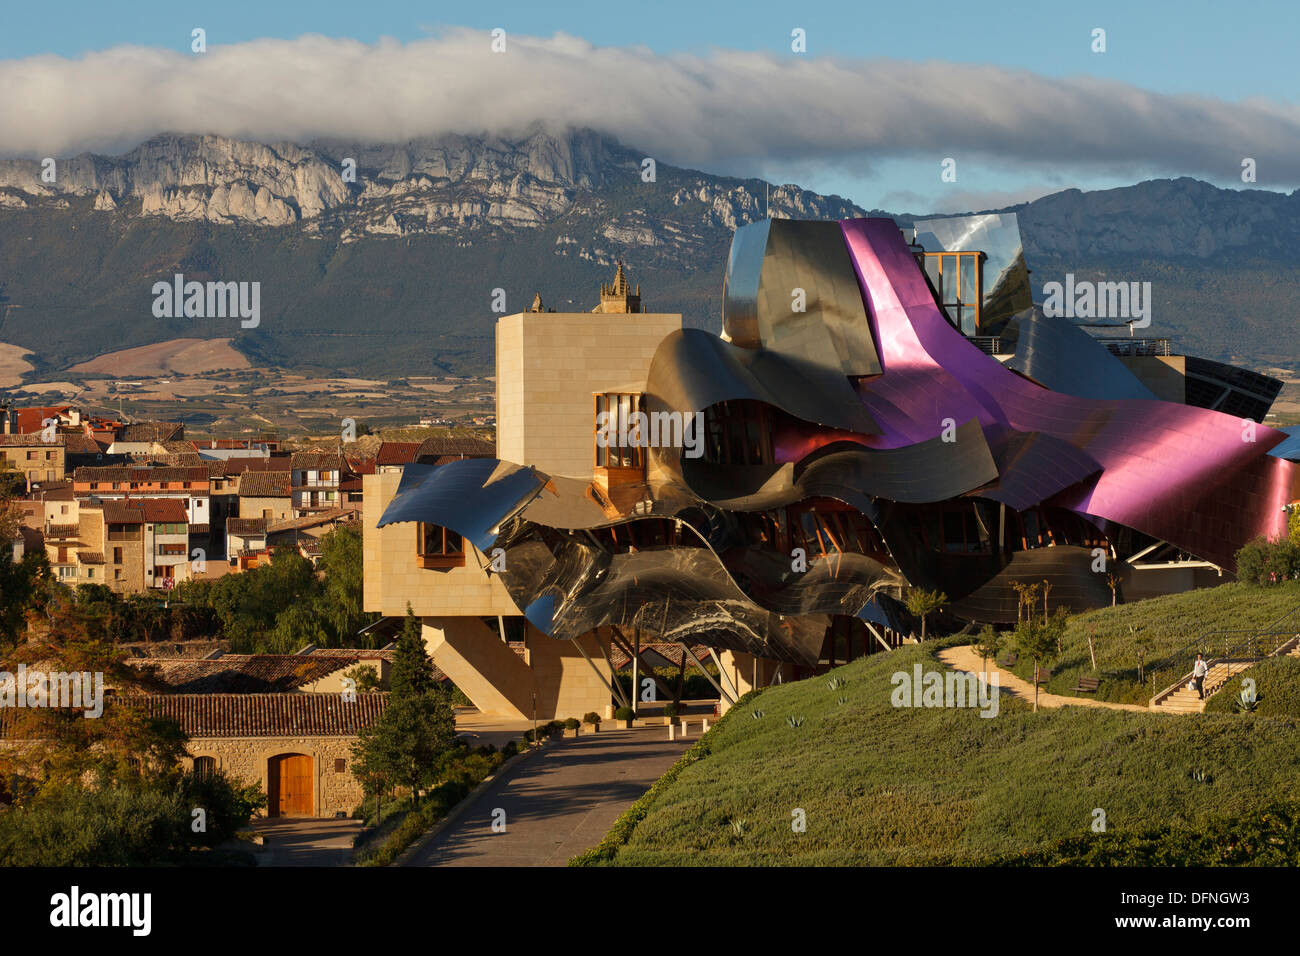 Hotel marques de riscal architect frank gehry bodega herederos del stock ph - Marquis de riscal hotel ...